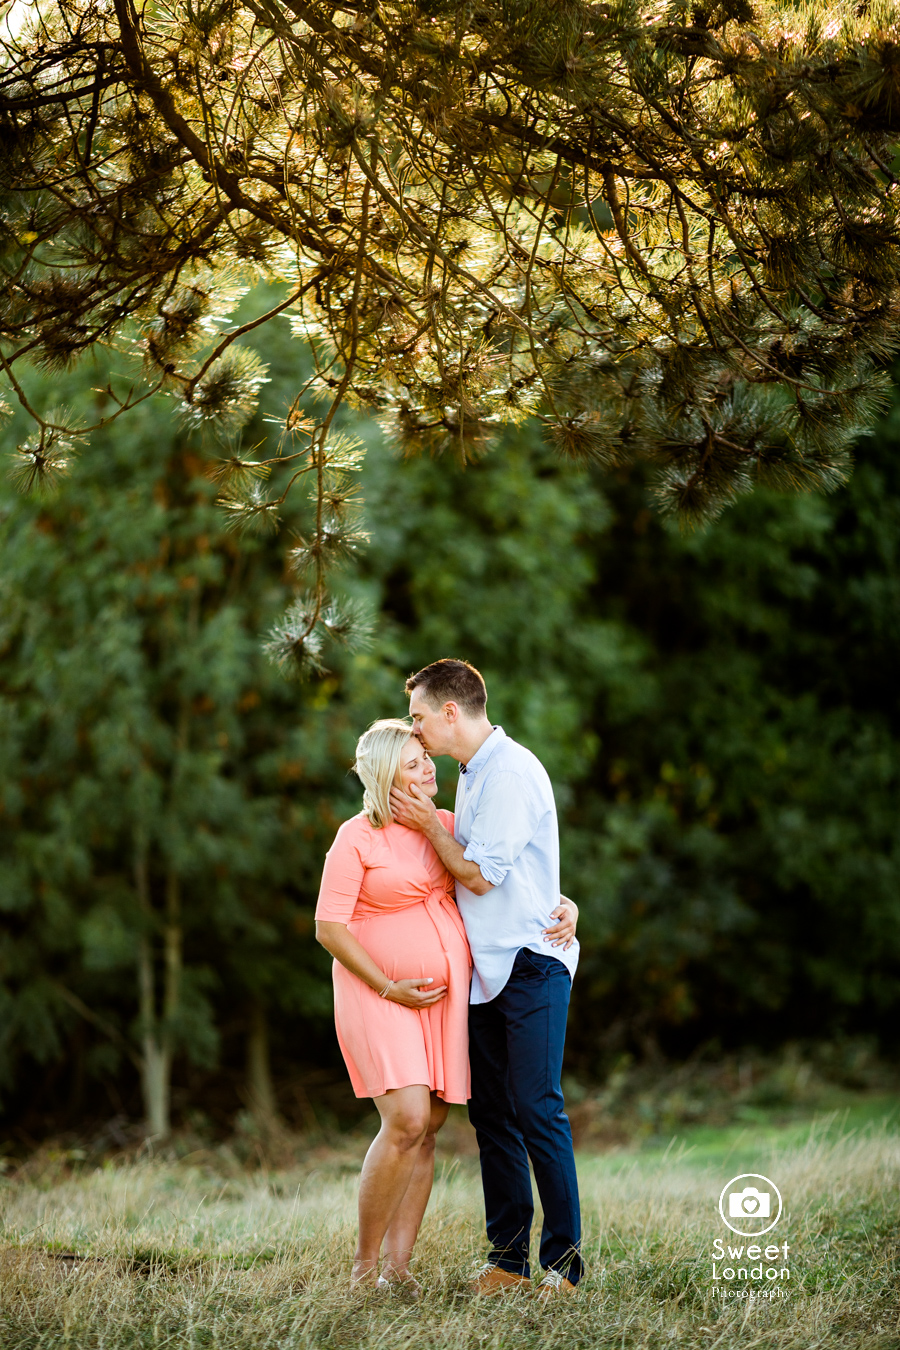 London maternity photographer in Hampstead Heath